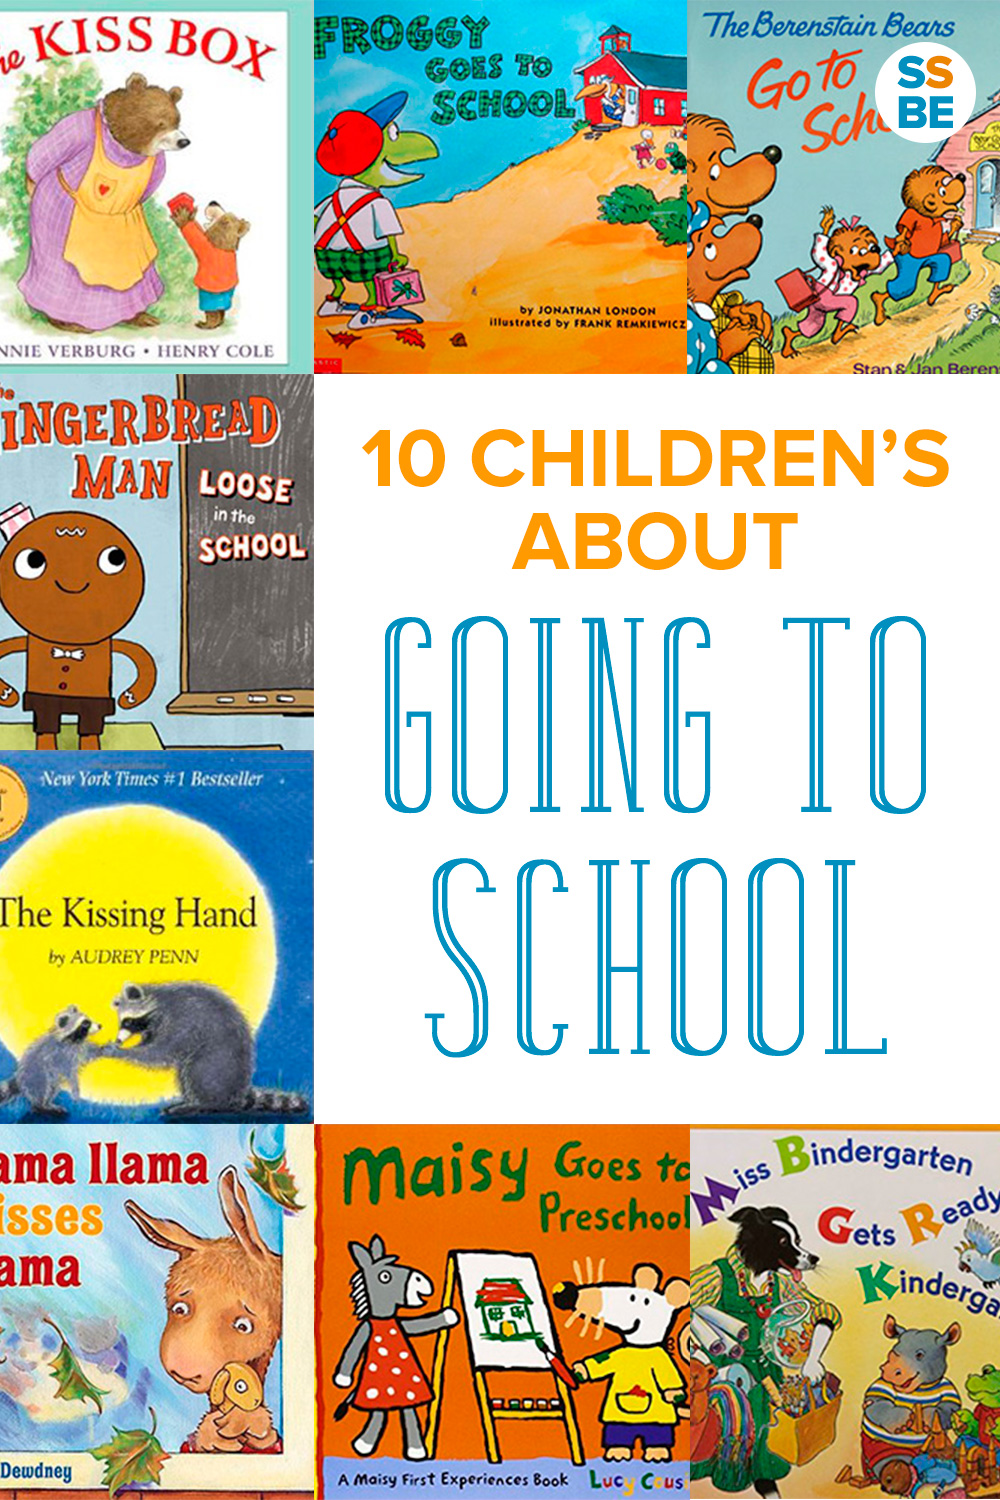 10 Children's Books about Going to School